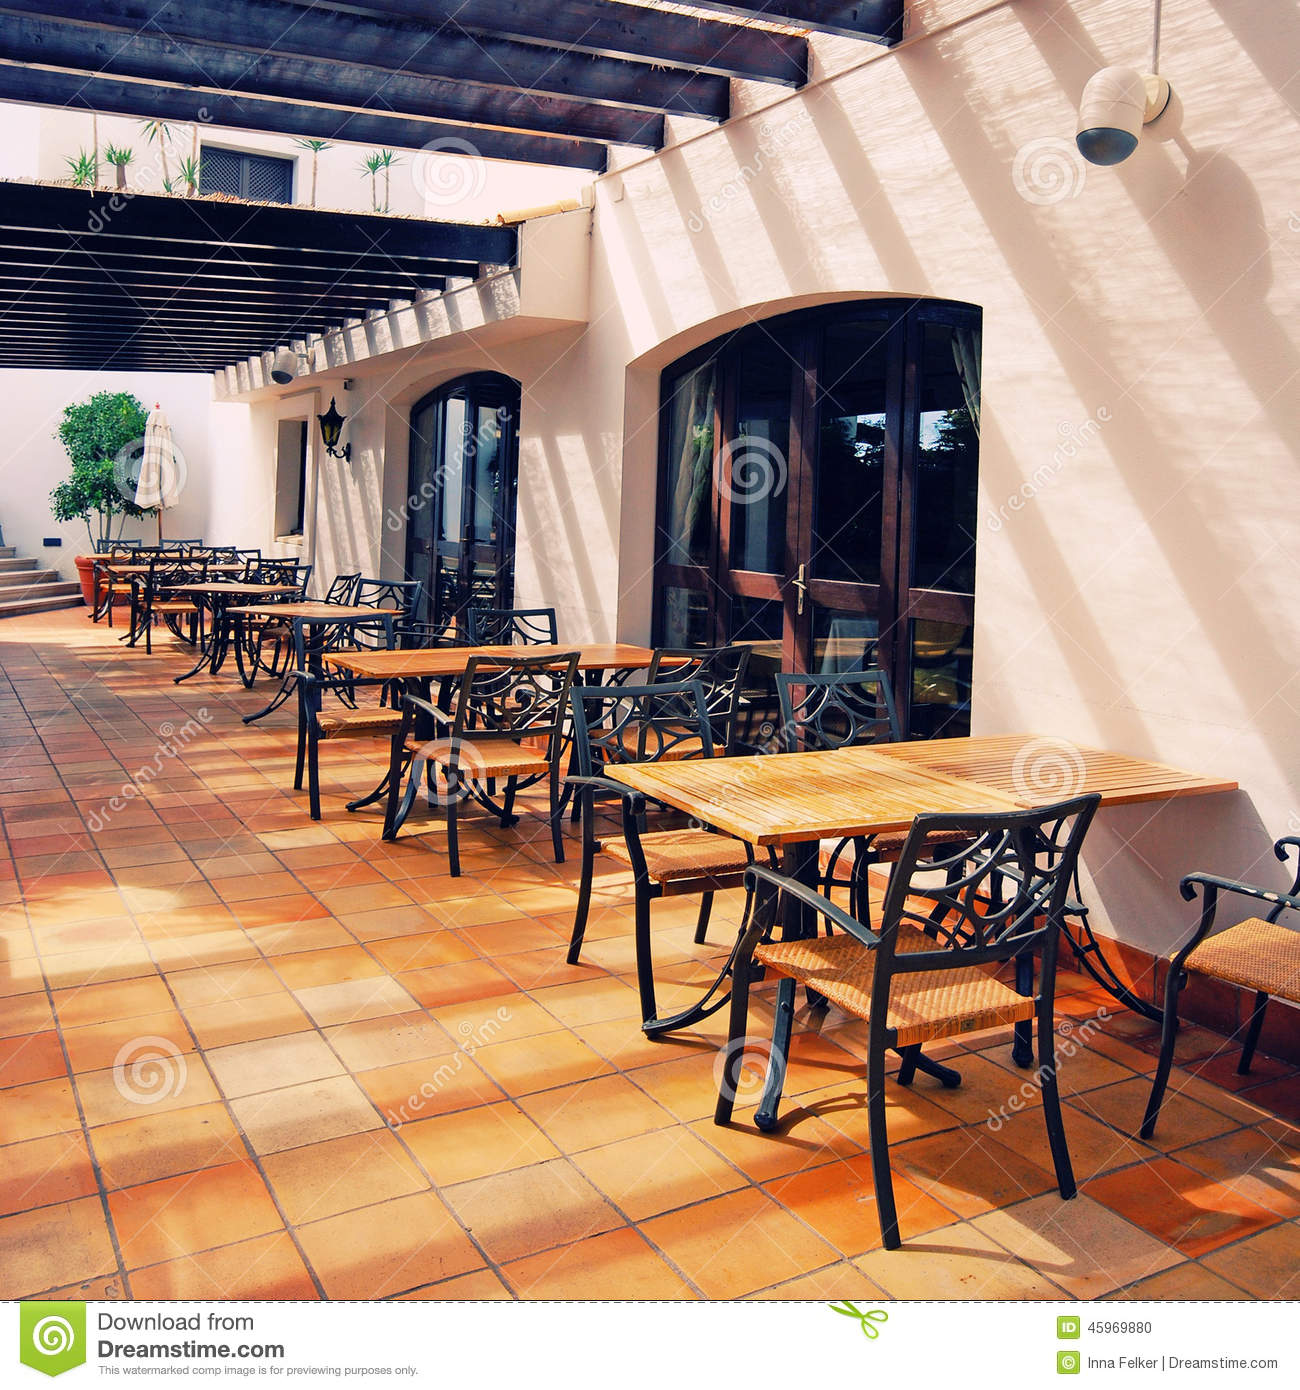 Open terrace cafe in mediterranean town stock photo for Terraces opening times